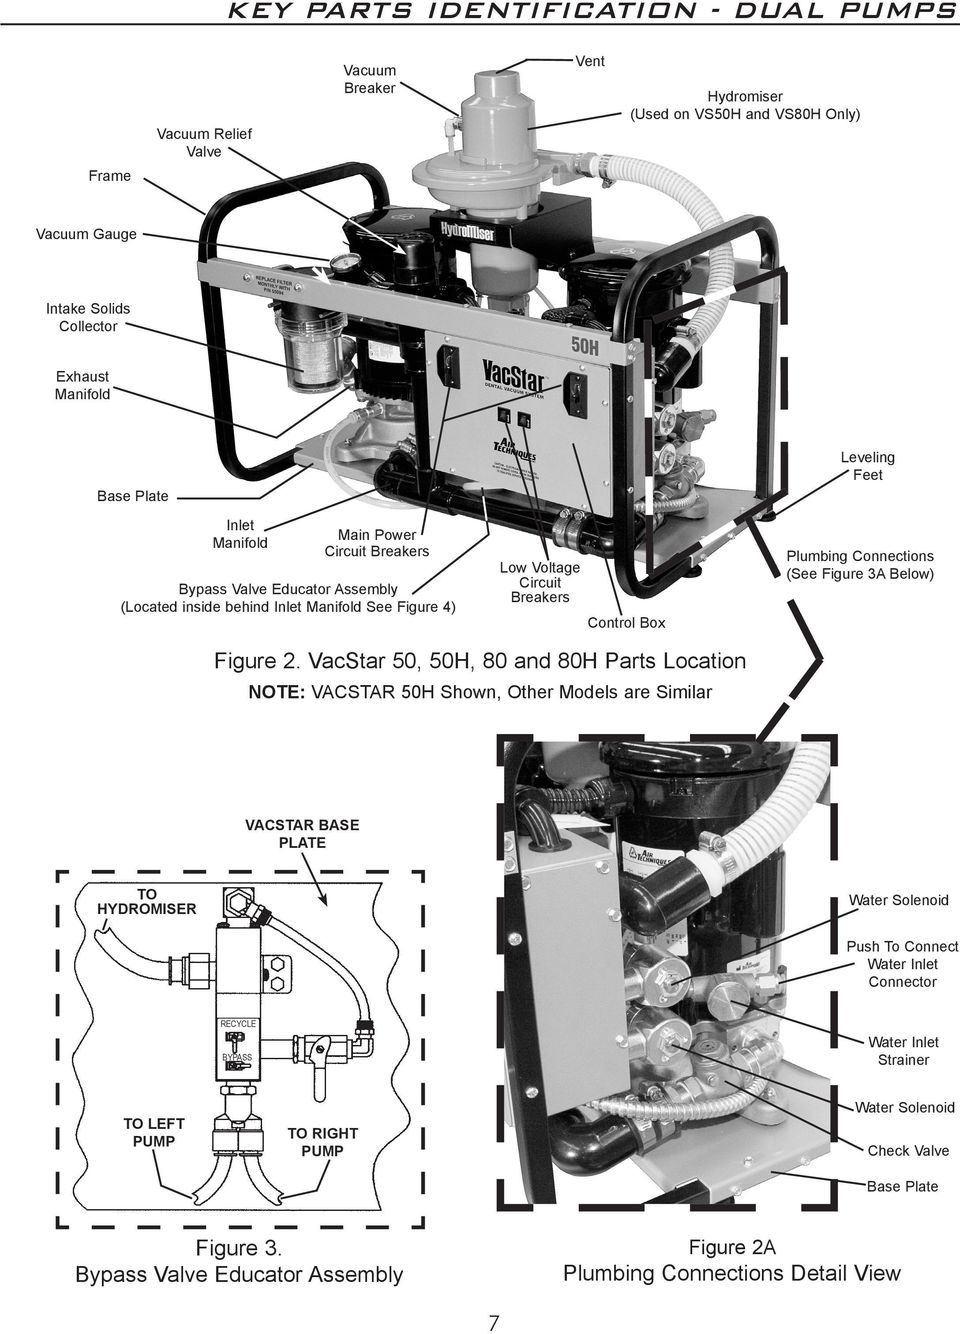 Dental Vacuum System Part Numbers Vs2o Vs40 Vs50 Vs50h Vs80 And The Inside Of Generator Inlet Box With Connections Made Click See Figure 3a Below 2